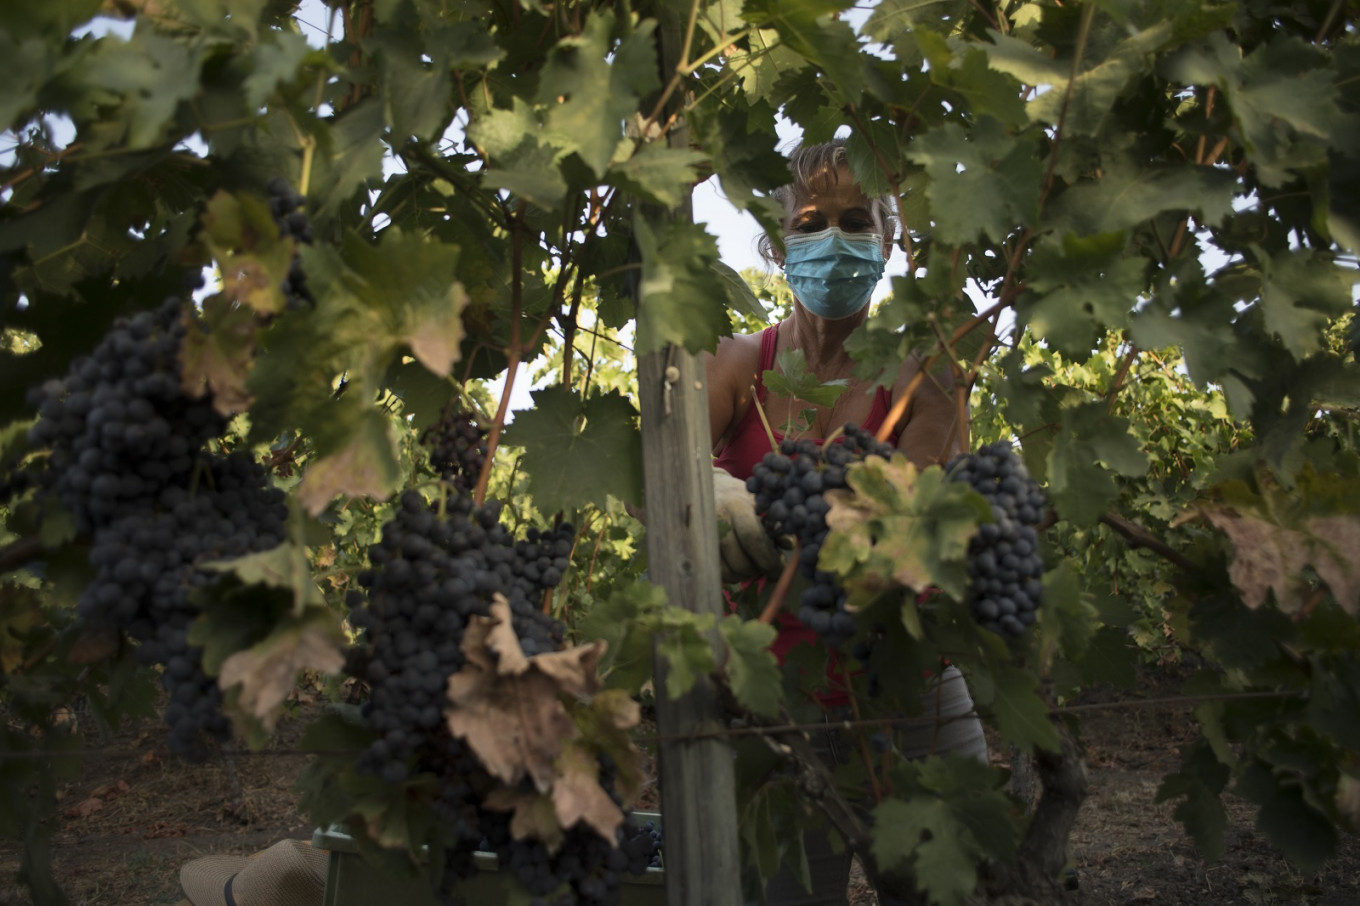 Spain vineyards feel the pinch but harvest must go on